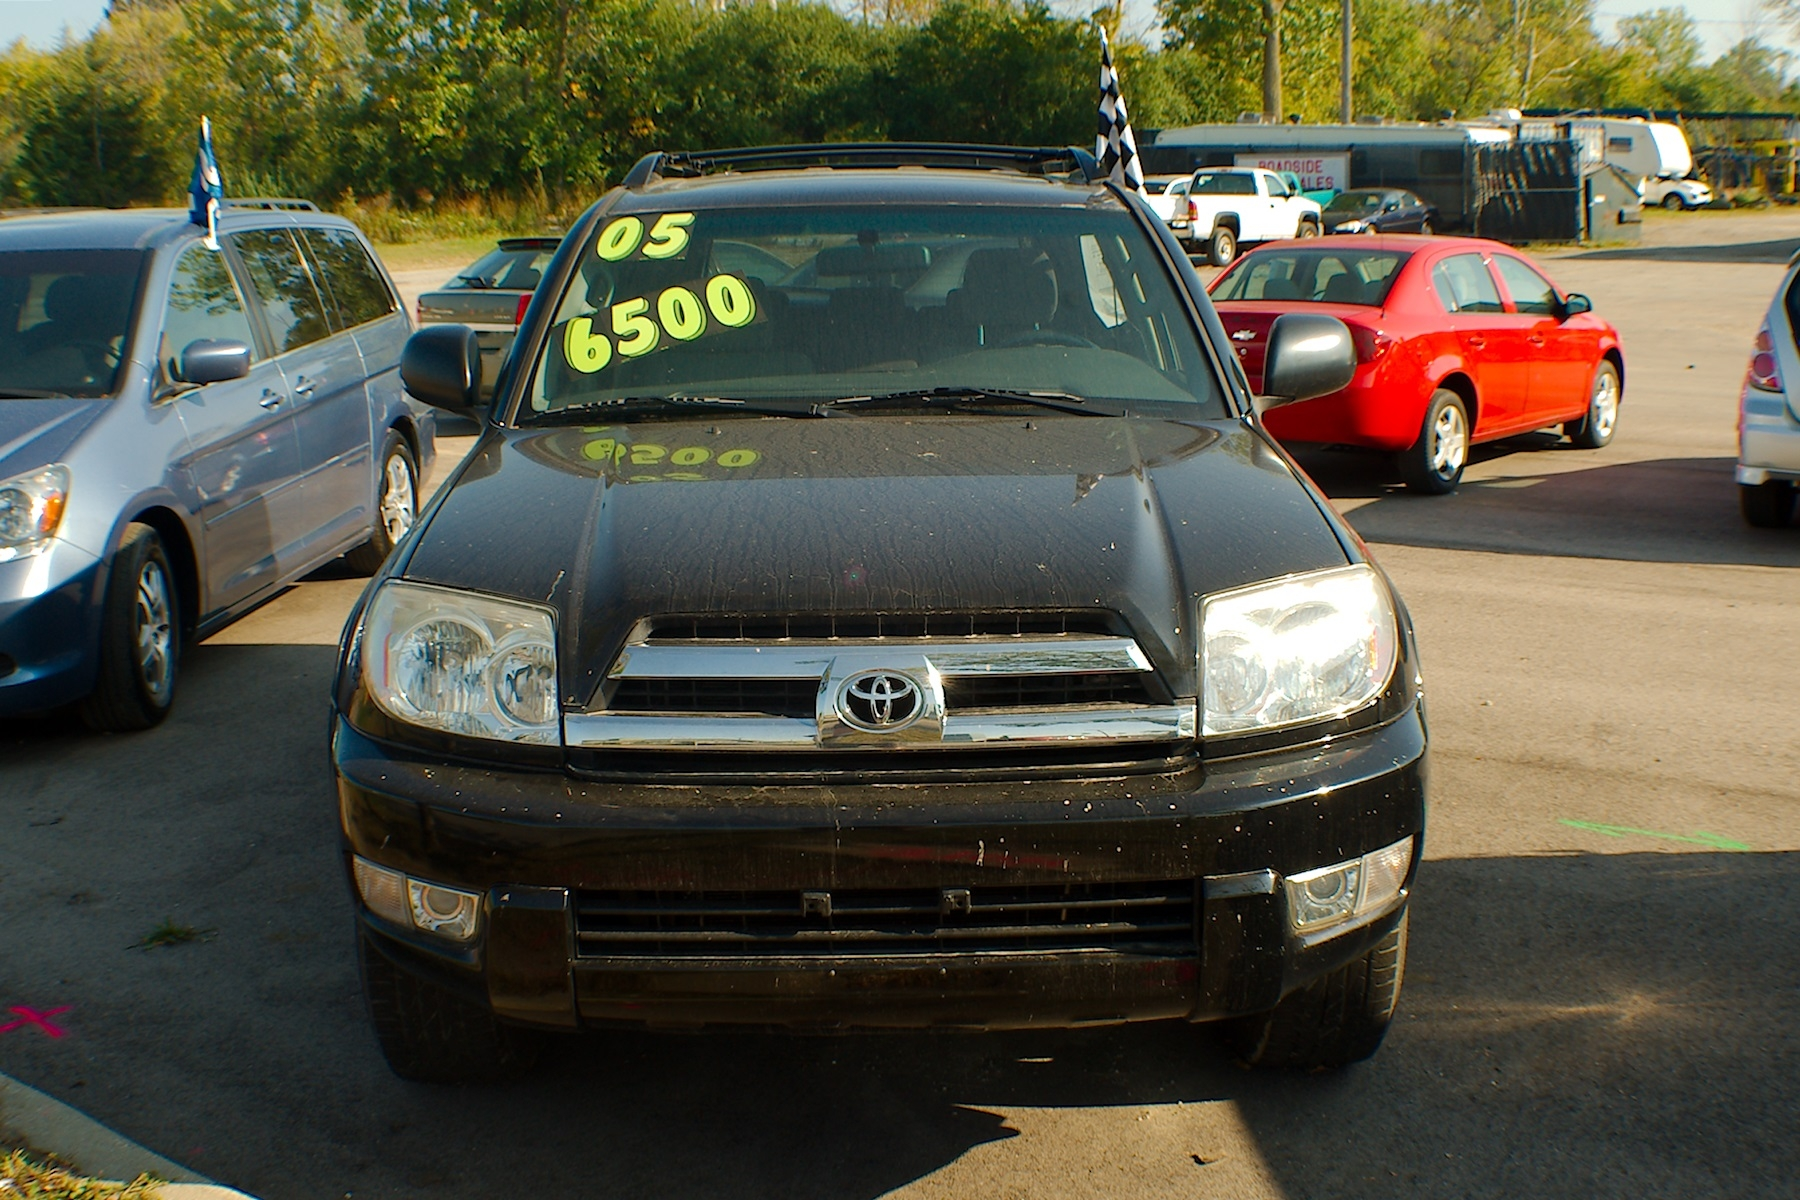 2005 Toyota 4Runner Black SUV 4x4 Used Car Sale Gurnee Kenosha Mchenry Chicago Illinois